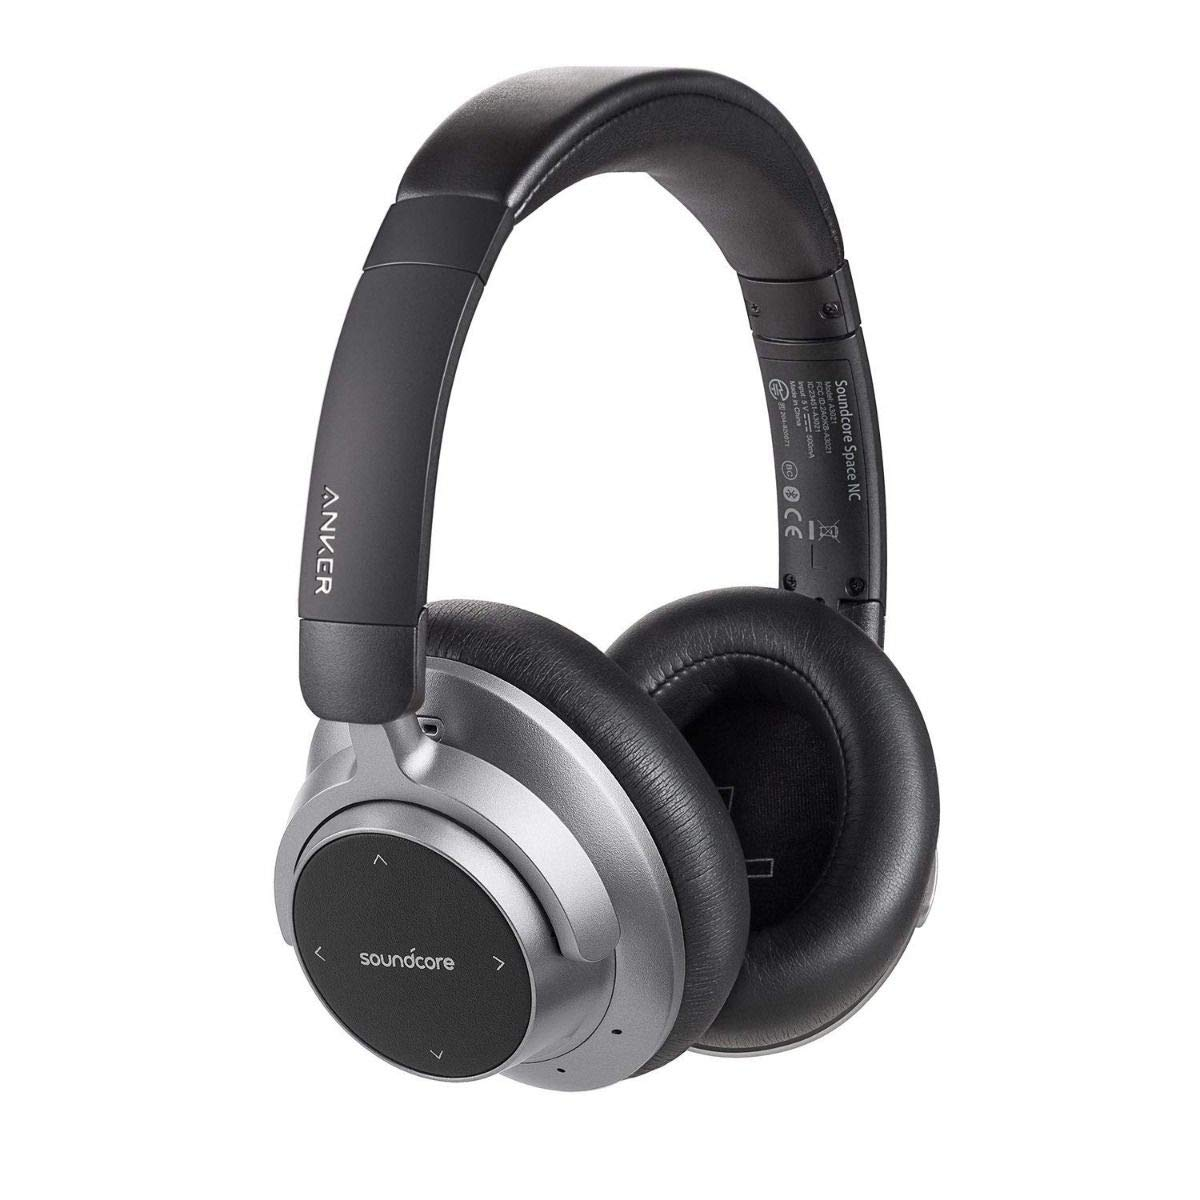 Anker AK-A30210F1 Soundcore Space NC Wireless Noise Cancelling Headphones – Black Gray